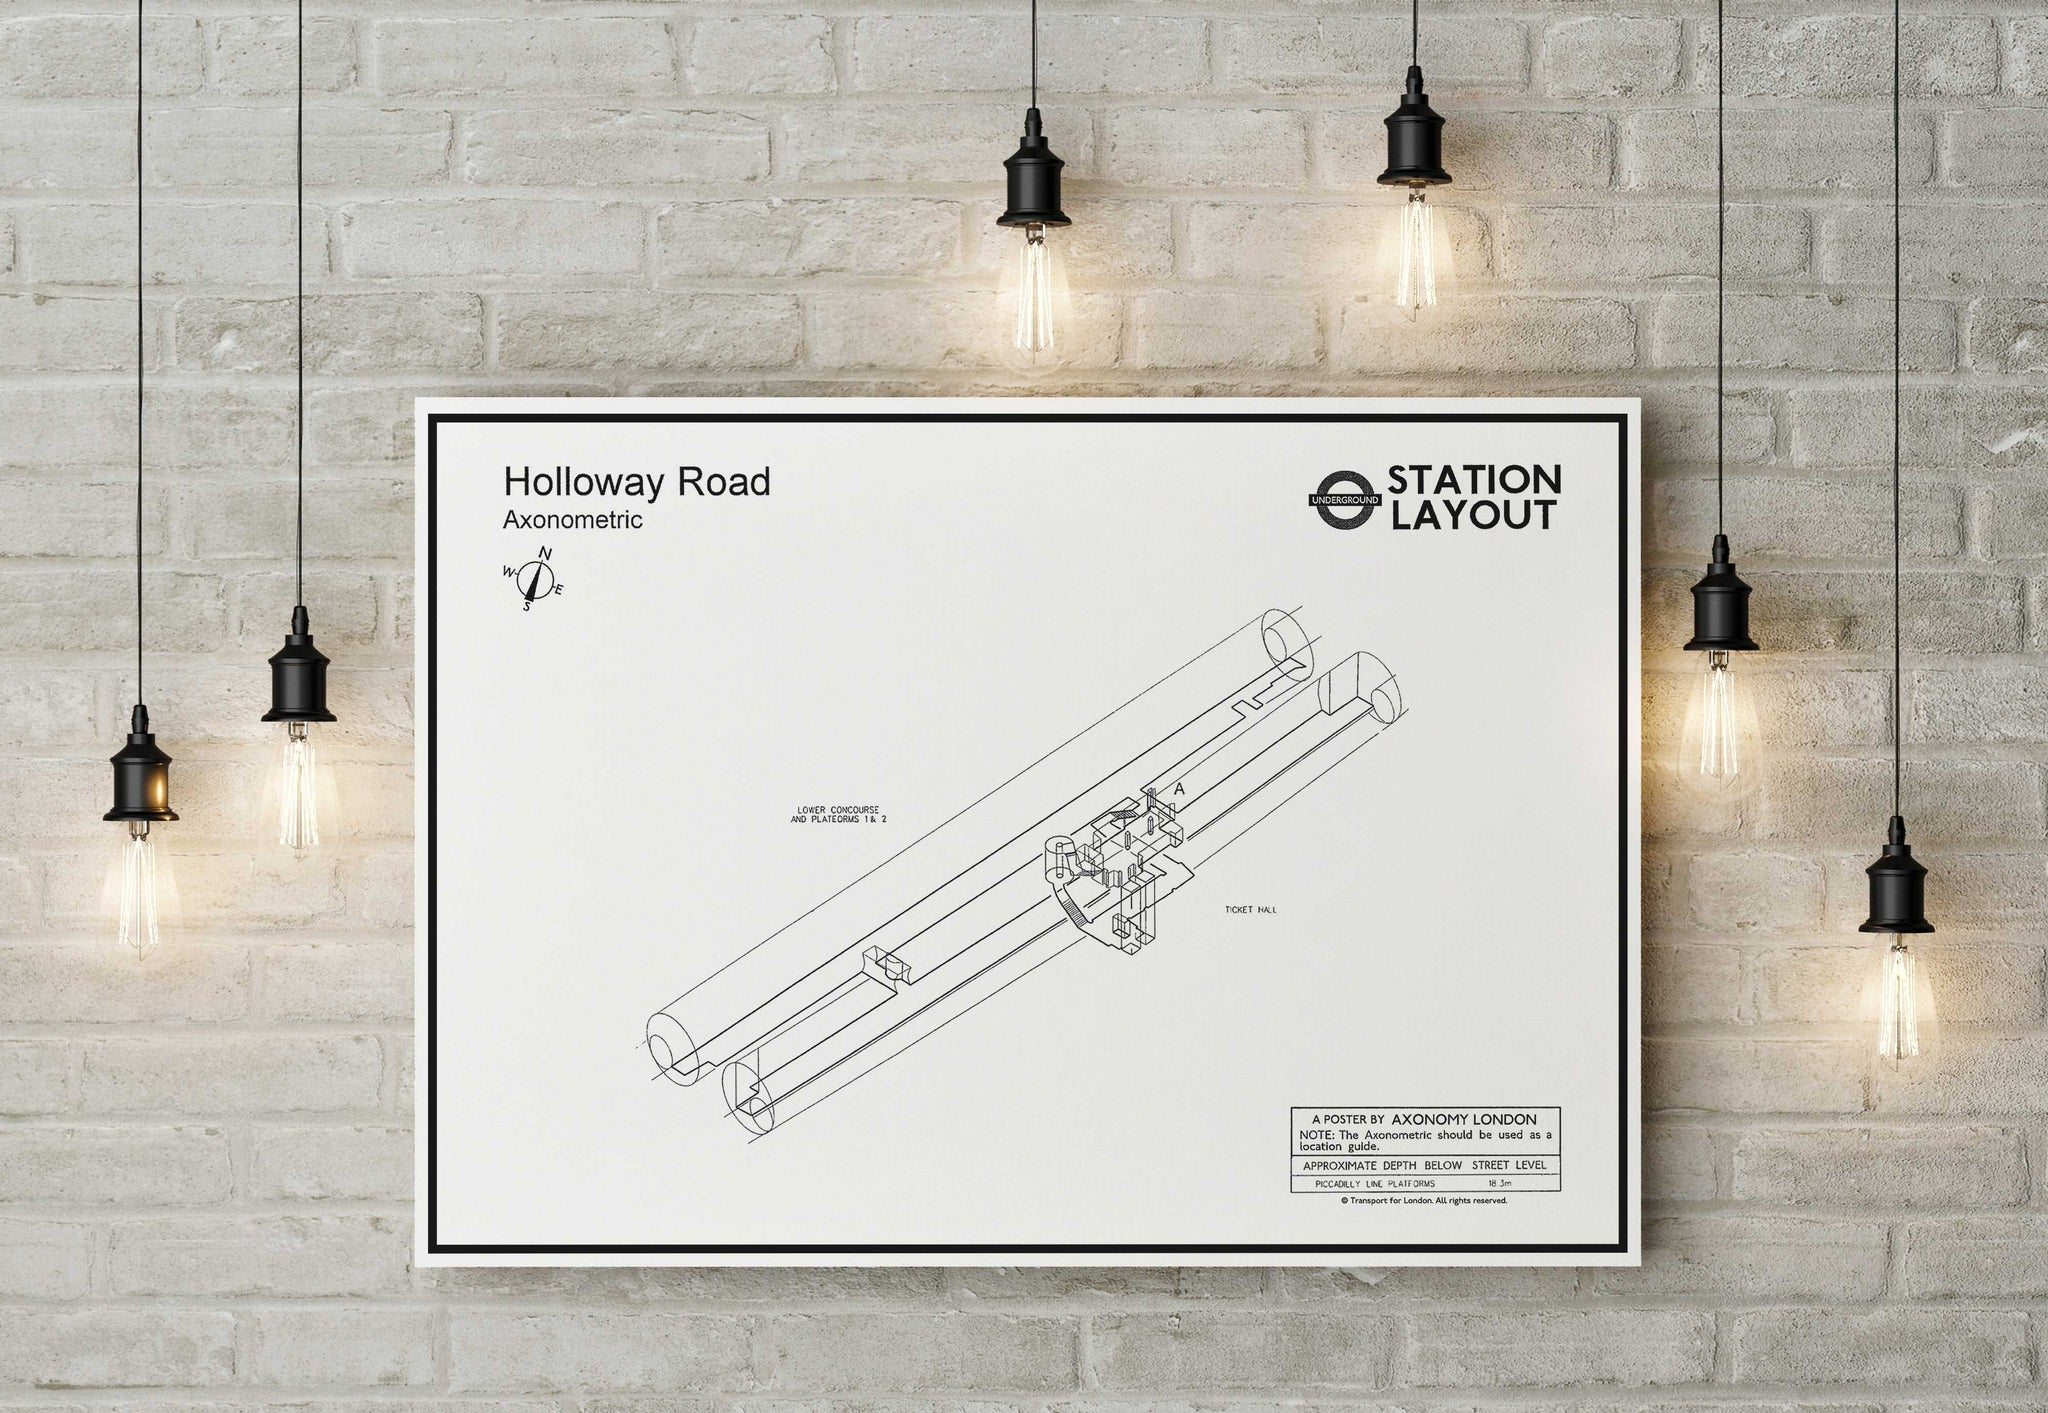 Holloway Road Underground Station